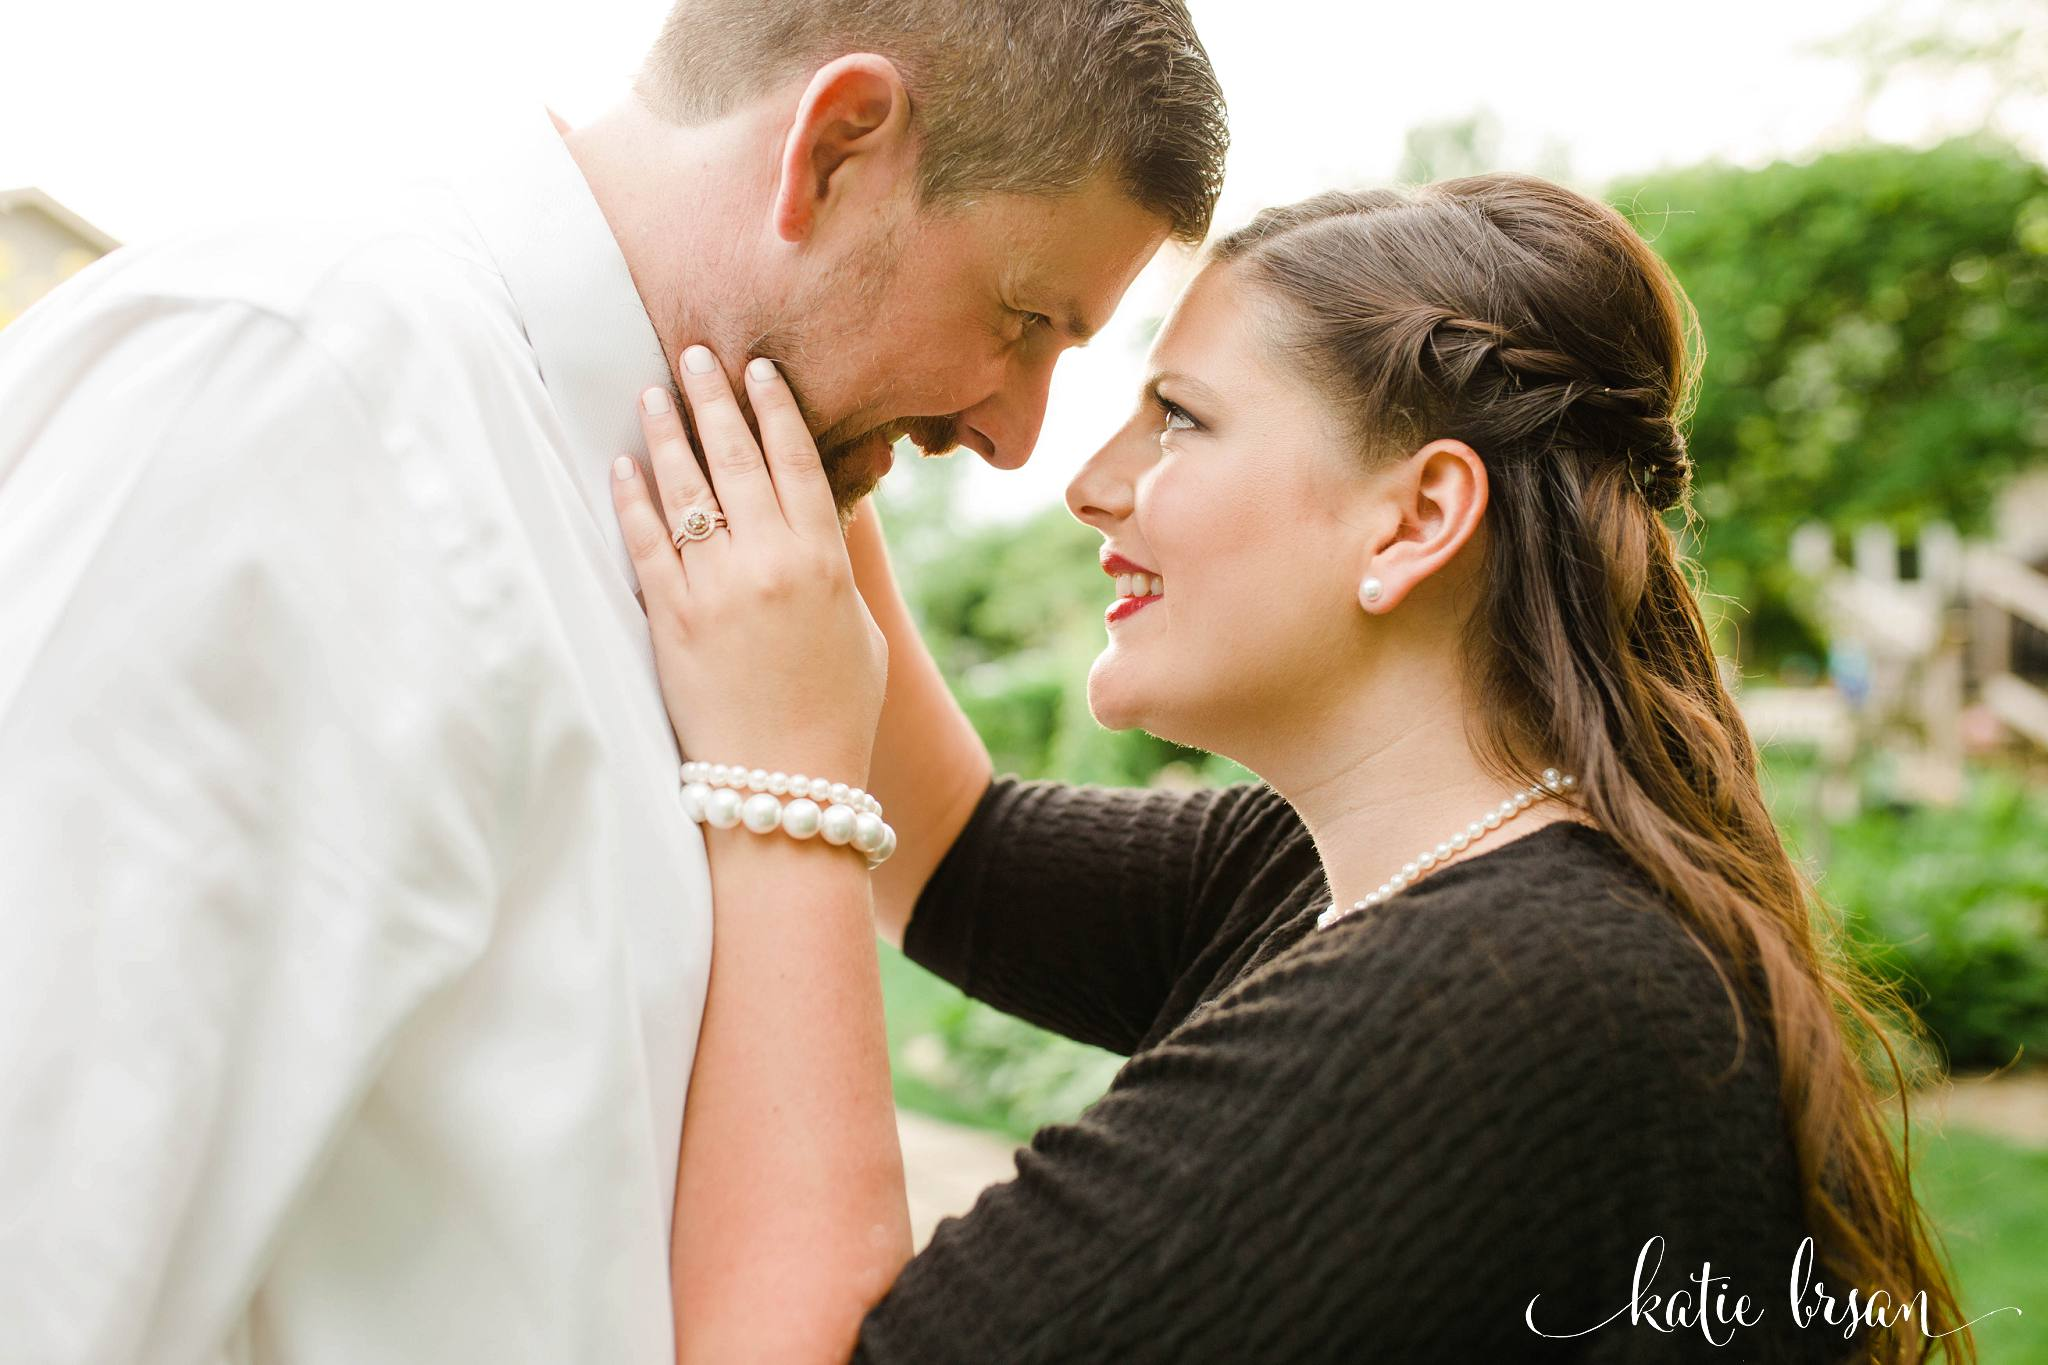 KatieBrsan-HomerGlen-NewLenox-EngagementSession-HadleyValley-TeacherEngagementSession-ChicagoWeddingPhotographer_0583.jpg